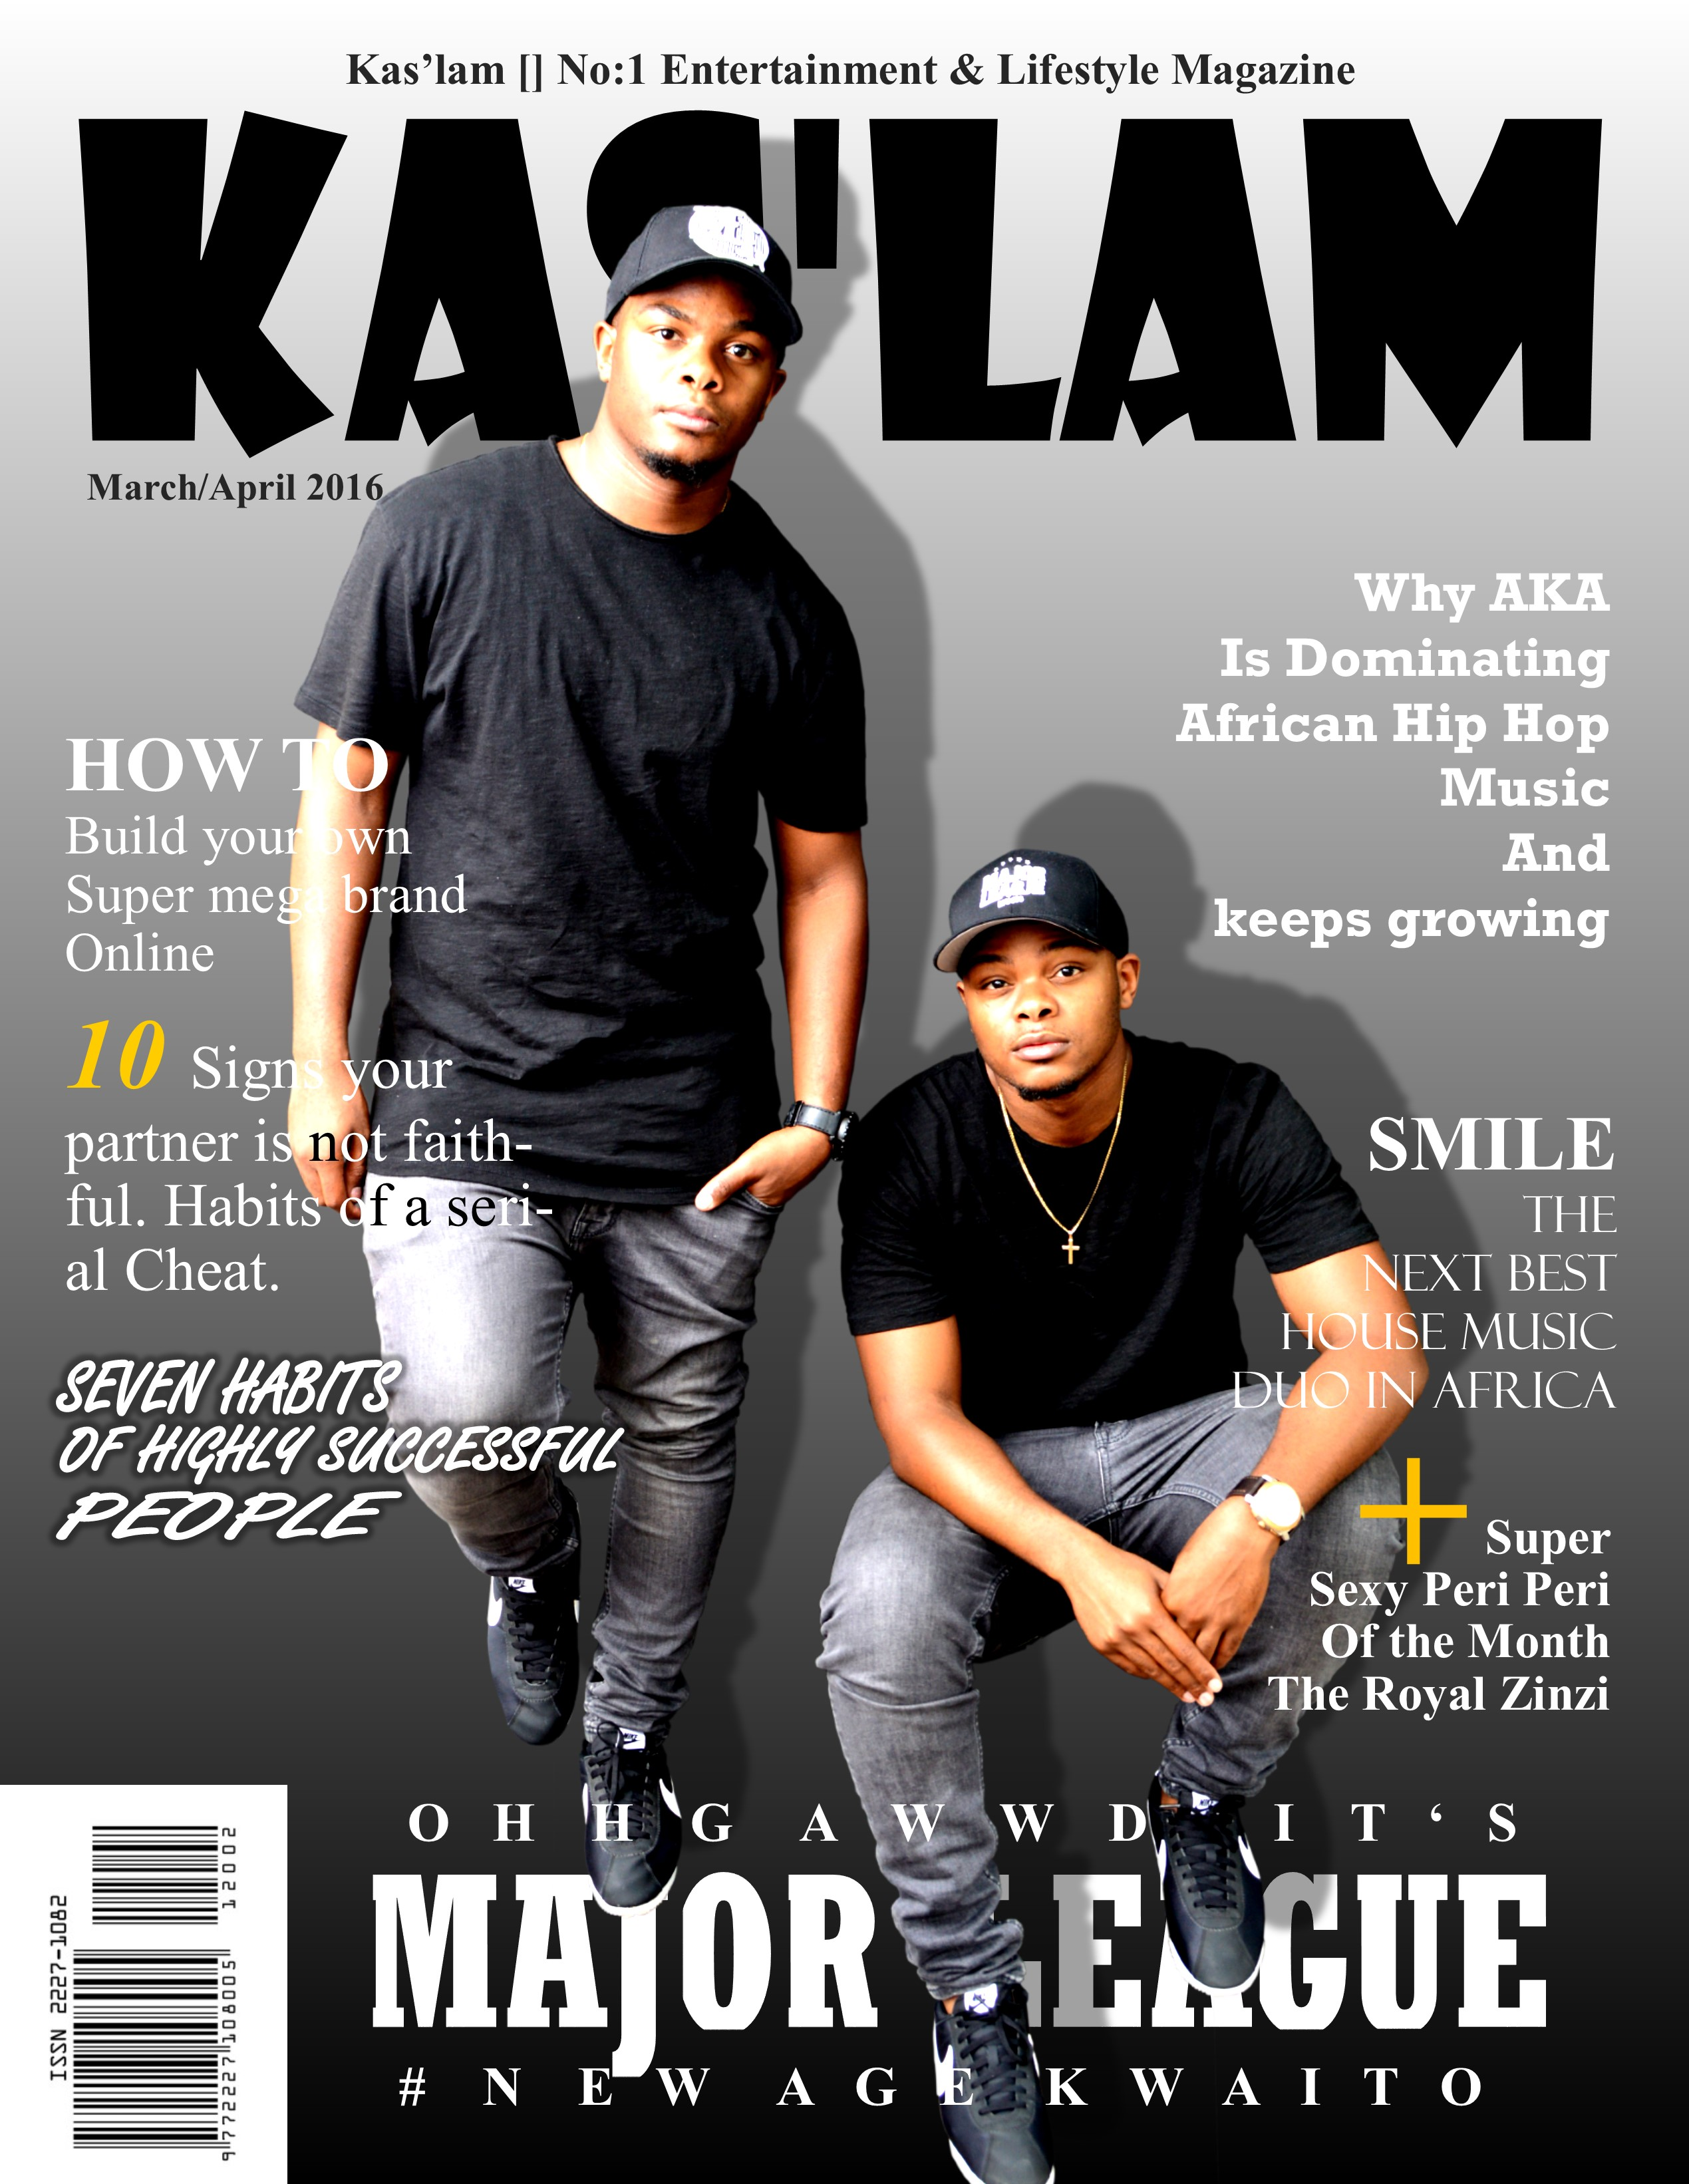 cover20 - What you didn't know about Major League DJz